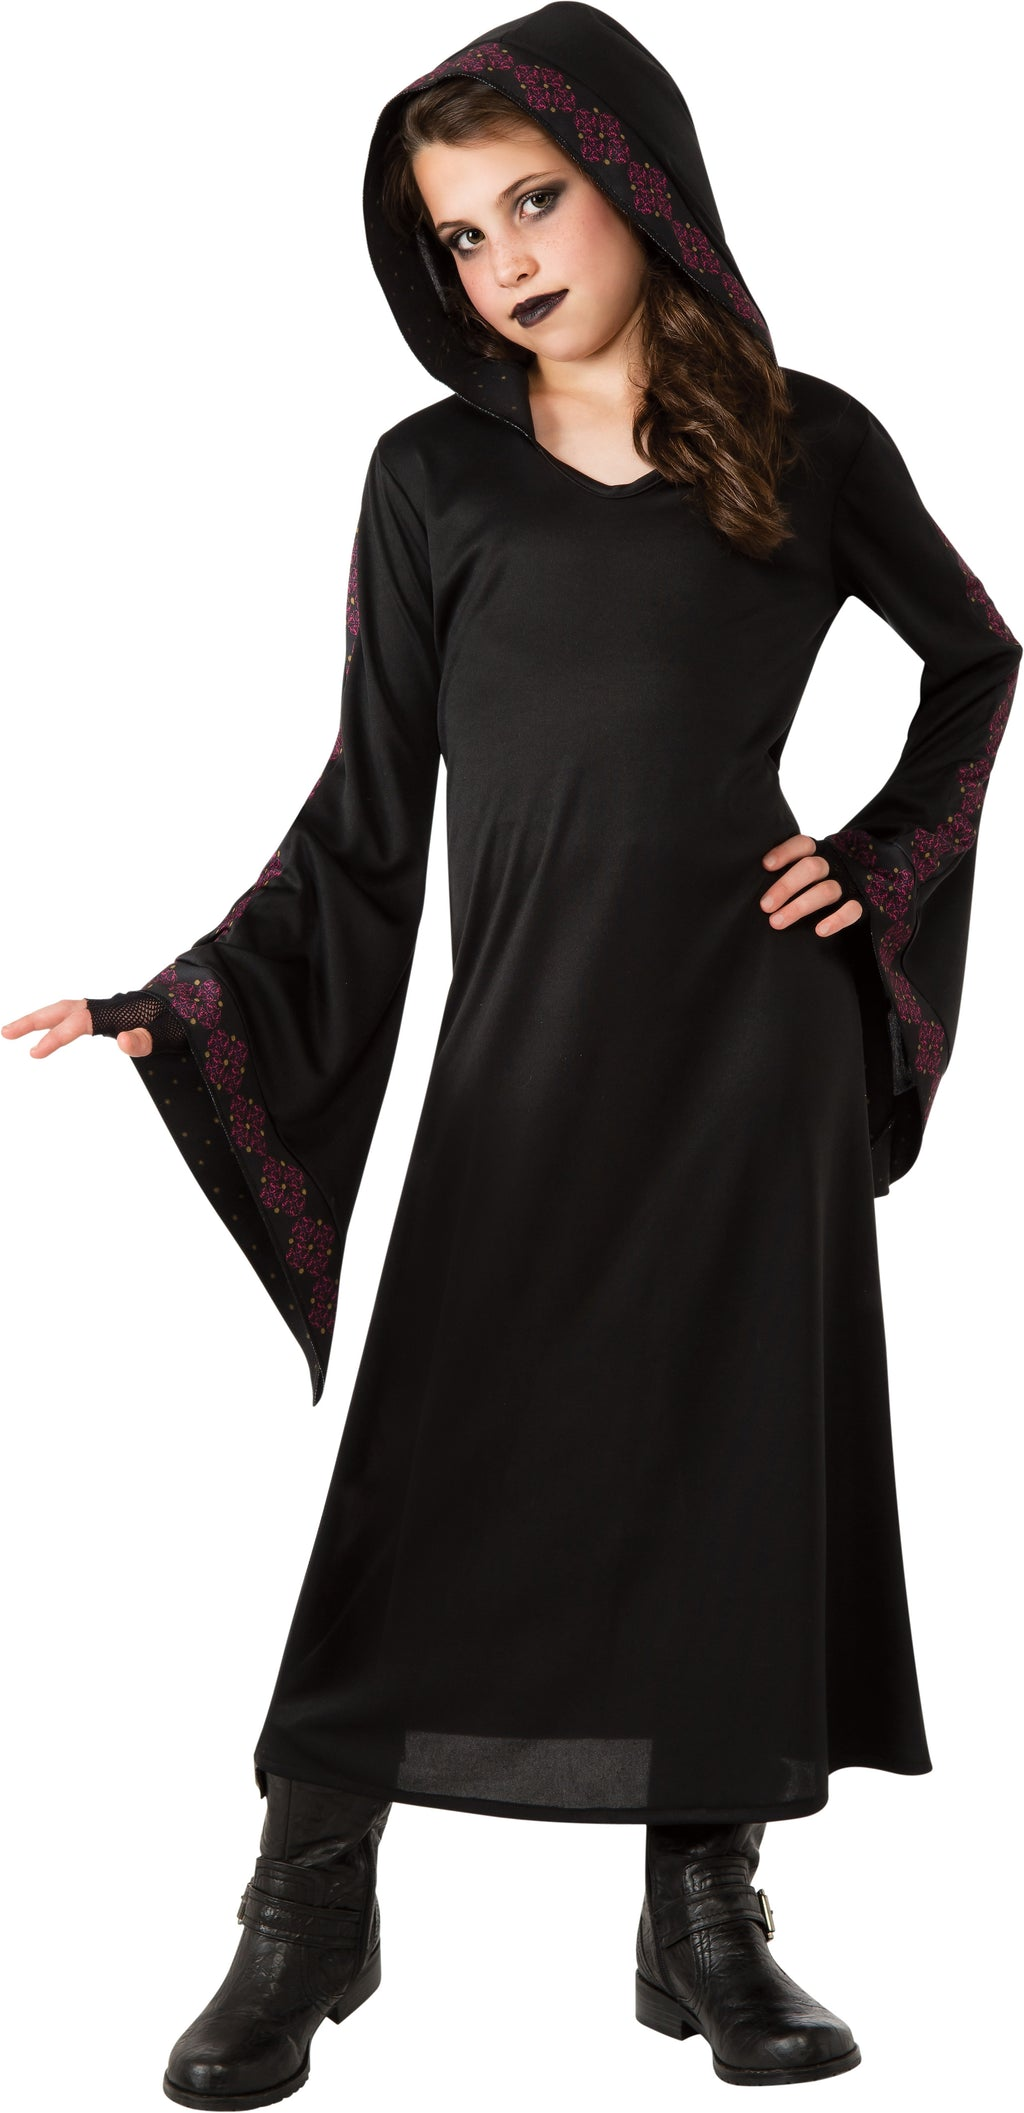 Girls Black Vampire Robe Costume